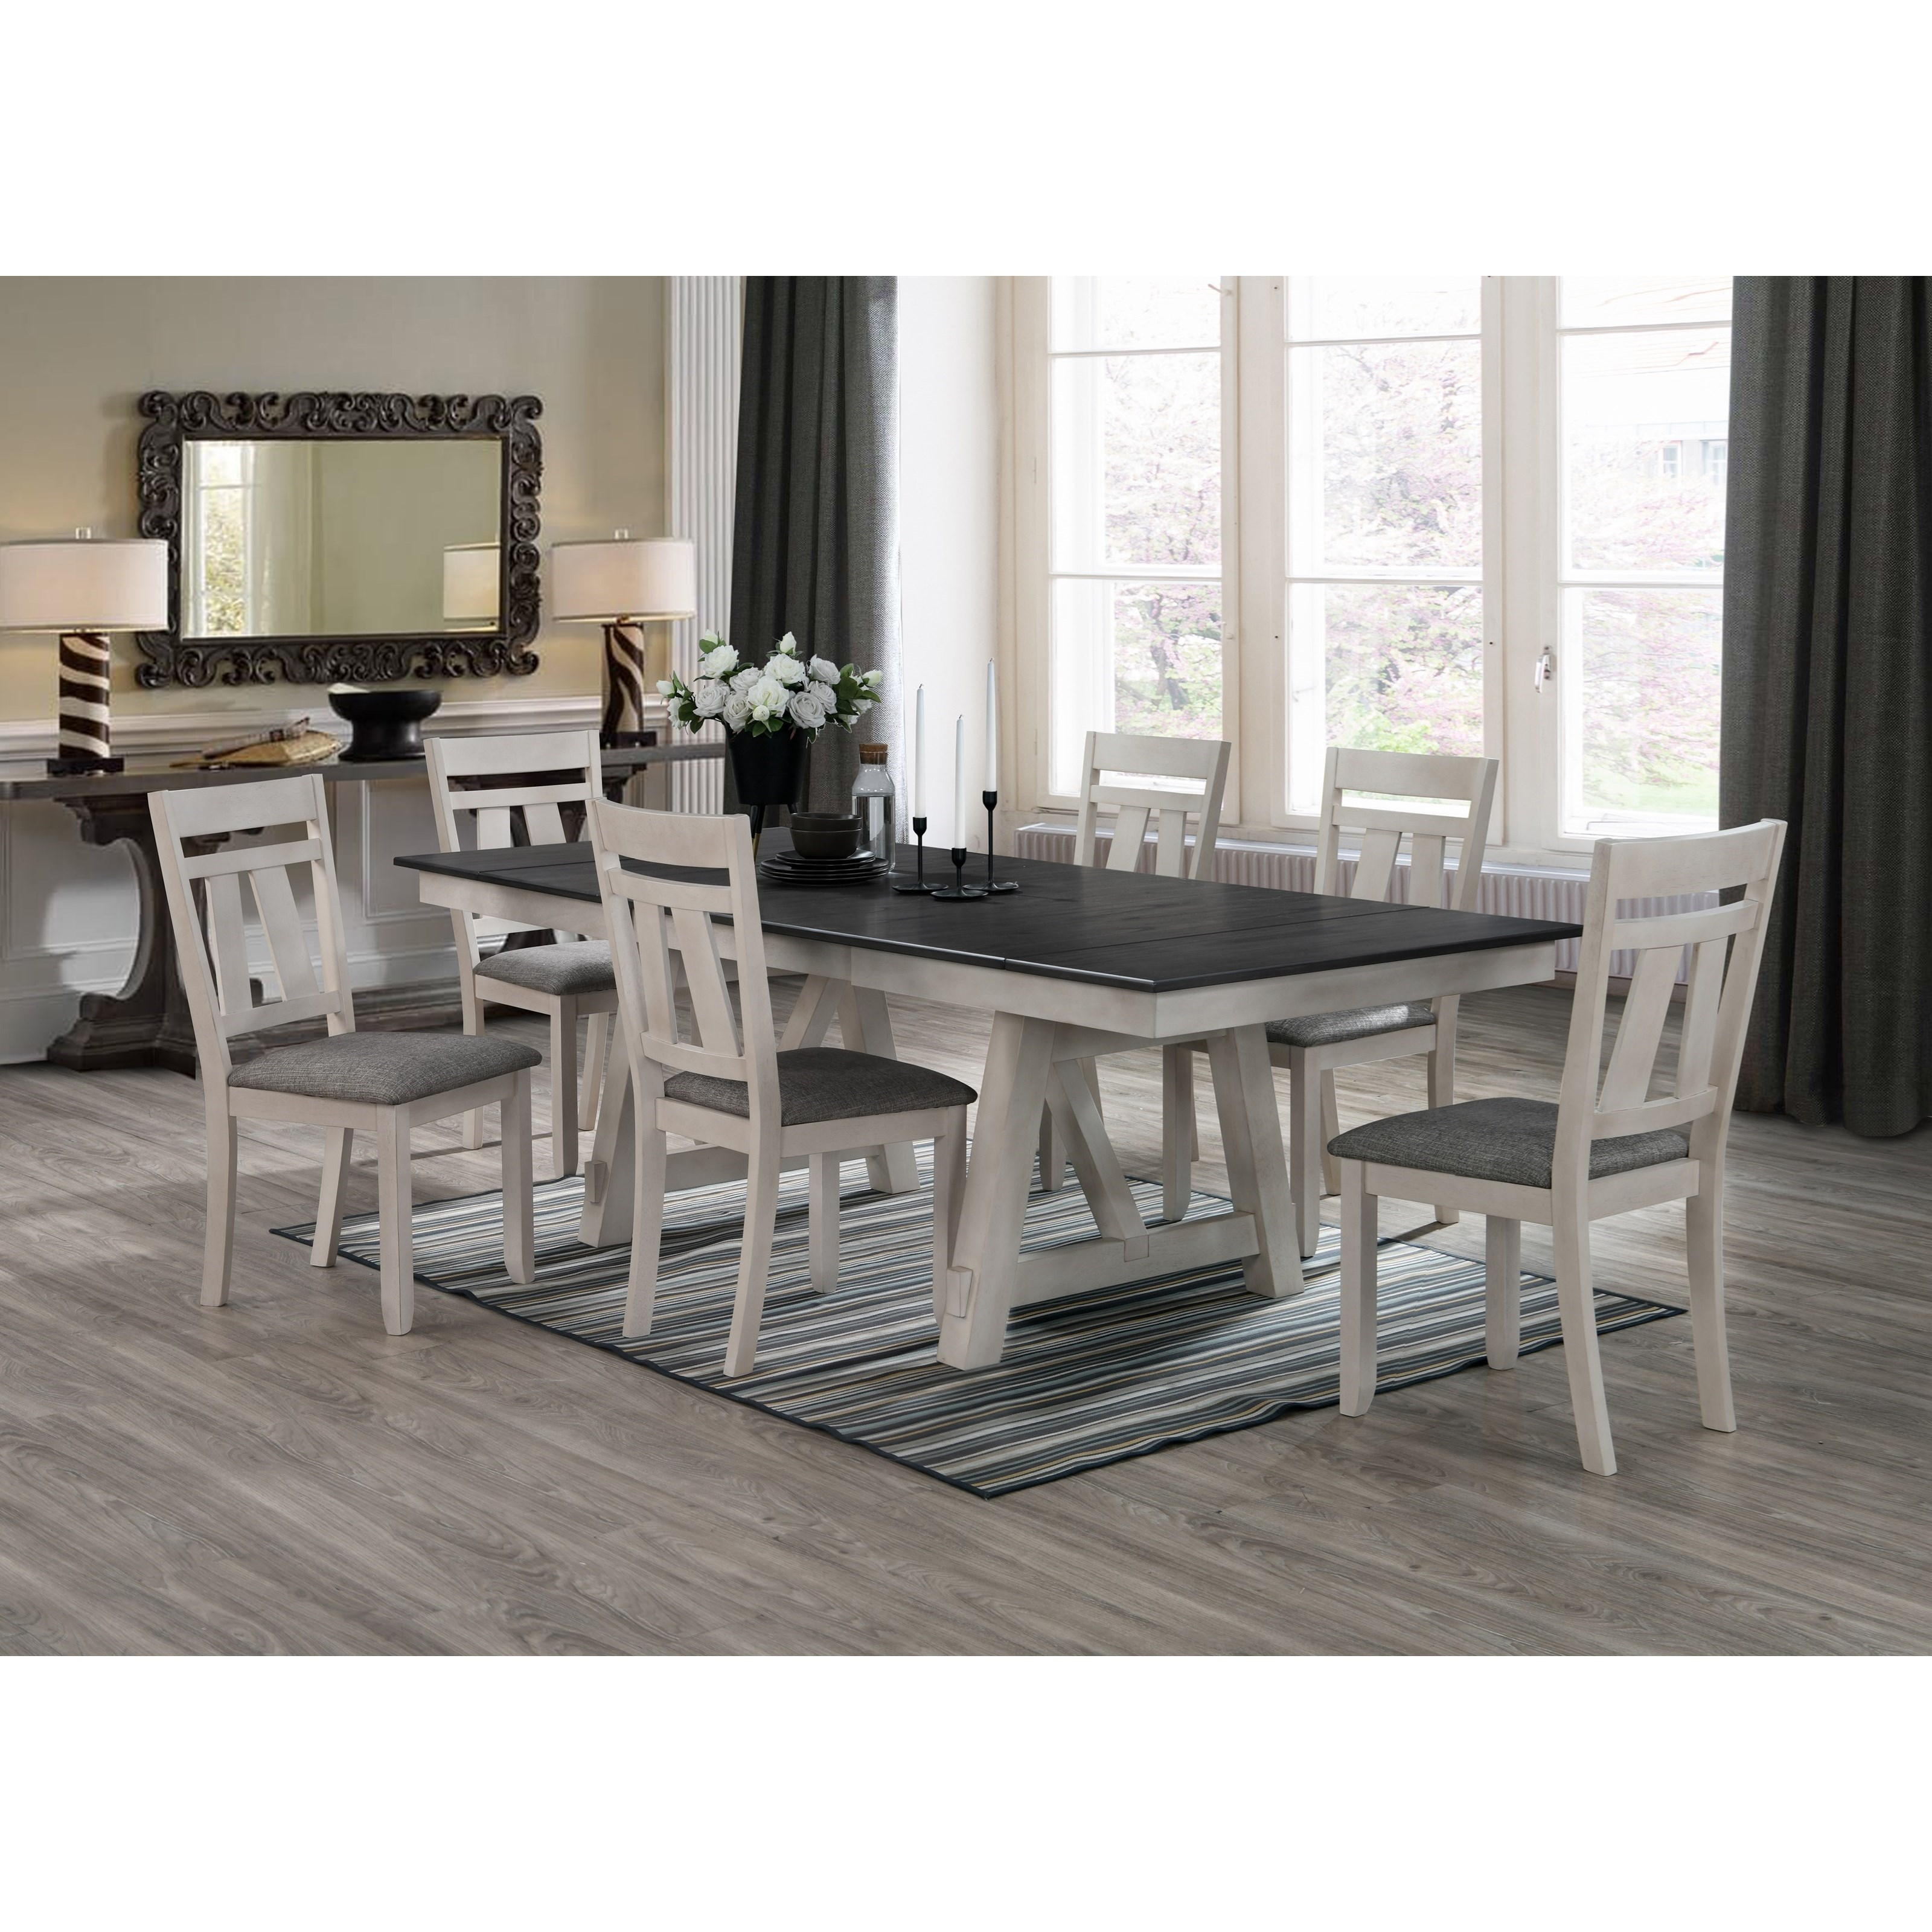 Maribelle 7-Piece Table and Chair Set by Crown Mark at Northeast Factory Direct